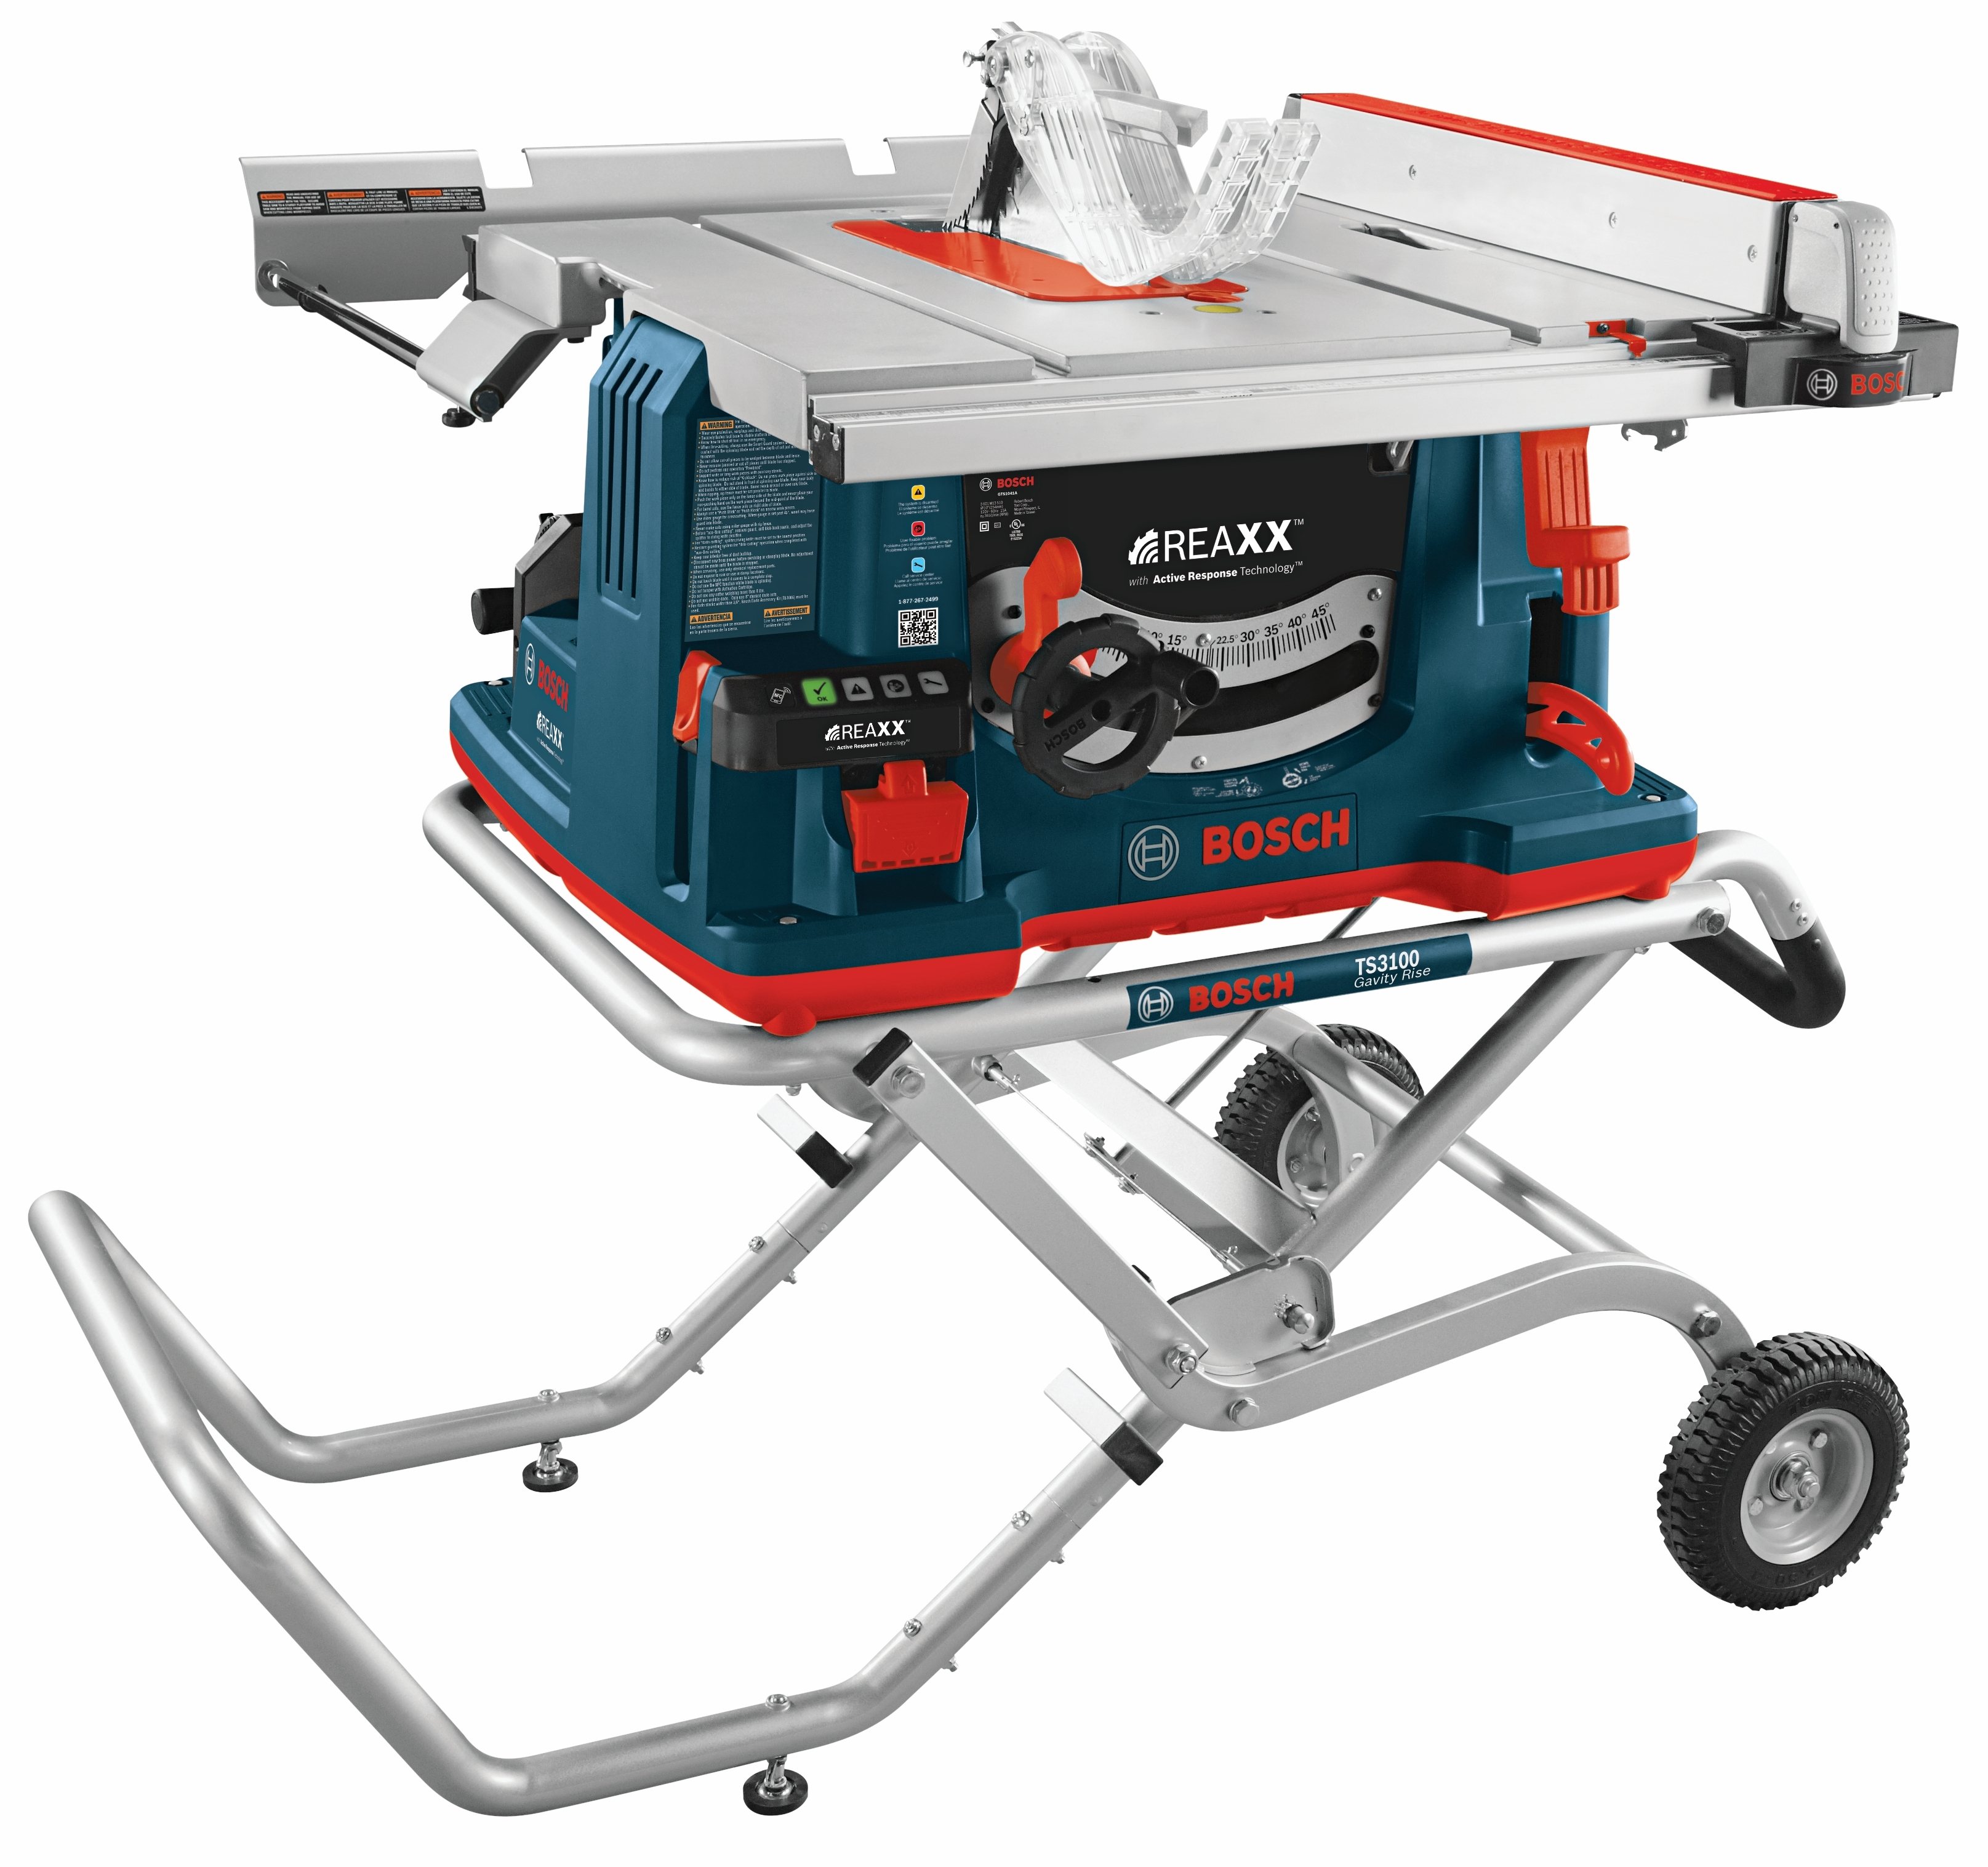 Bosch REAXX™ Jobsite Table Saw is the first saw with the company's proprietary flesh-detecting Active Response Technology™ (Photo: Business Wire)